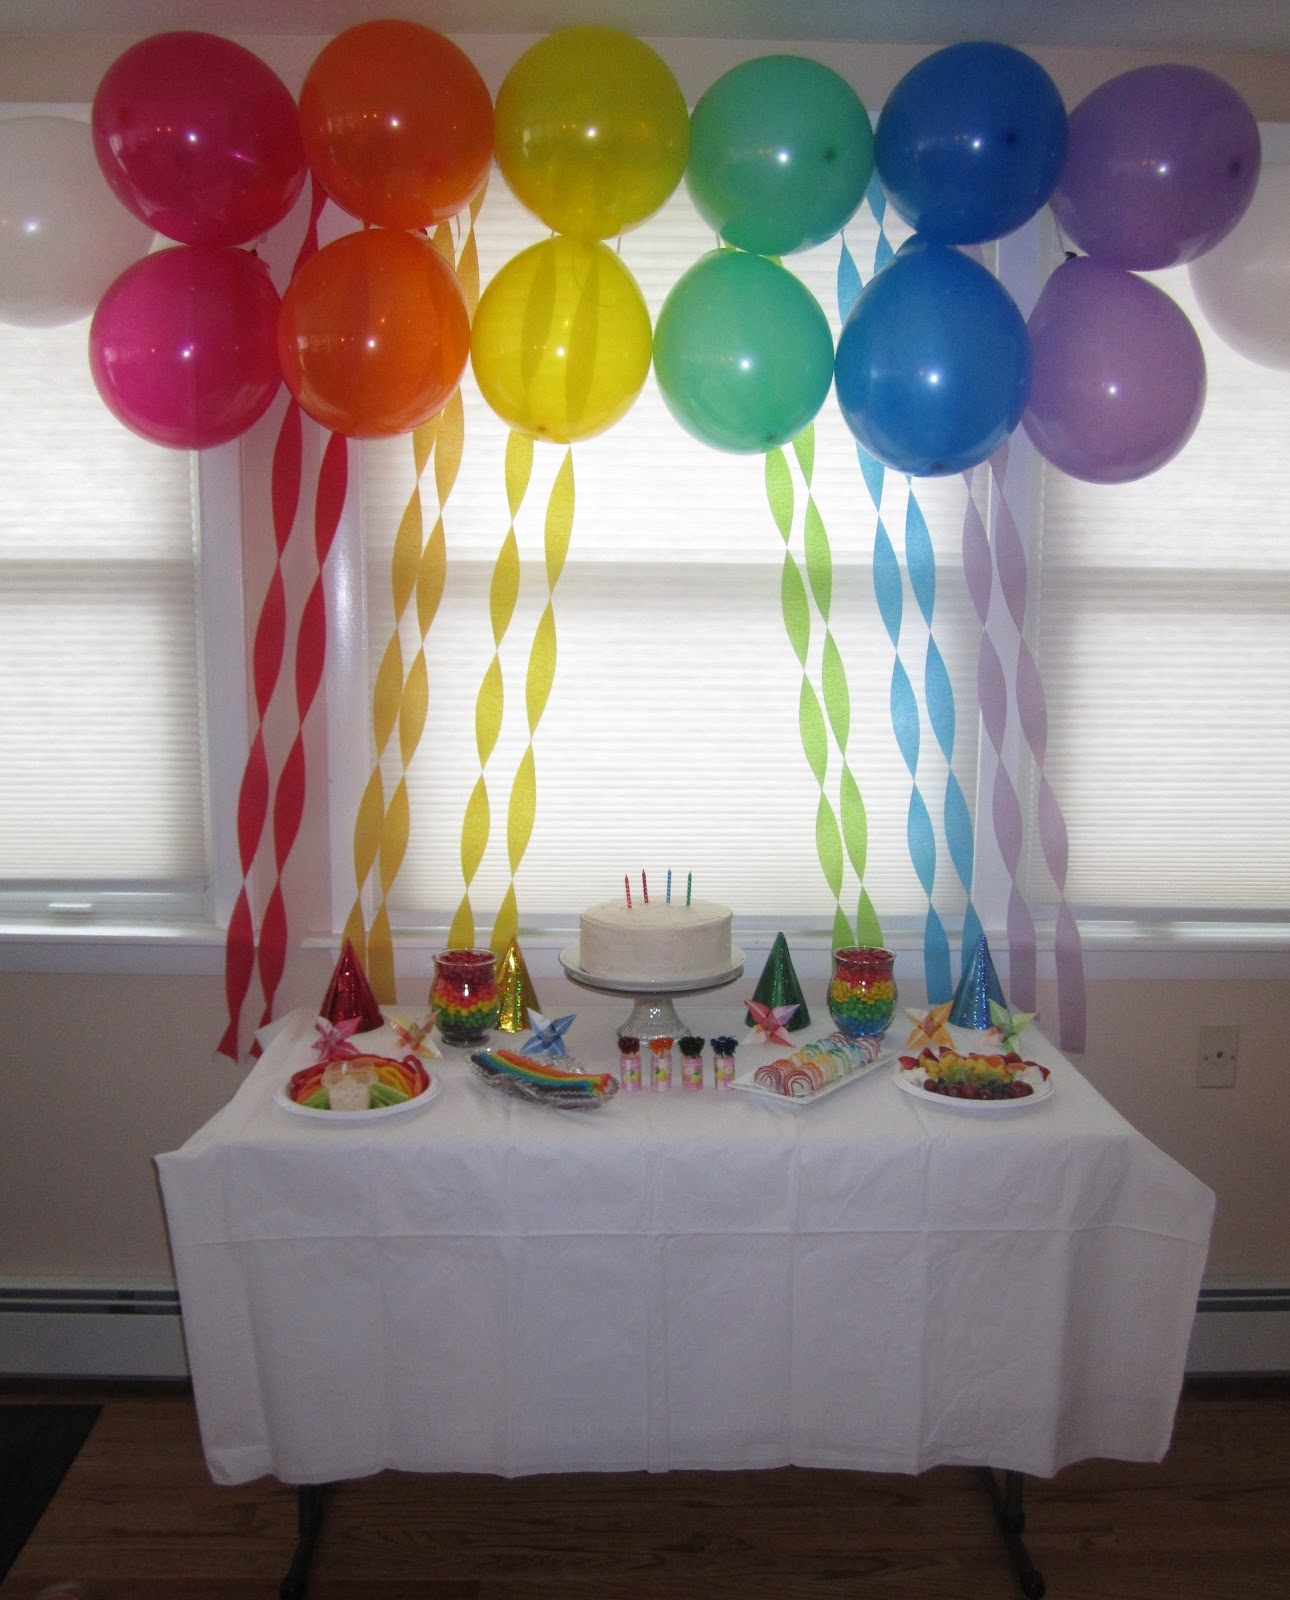 the display table with rainbow balloons and rainbow streamers